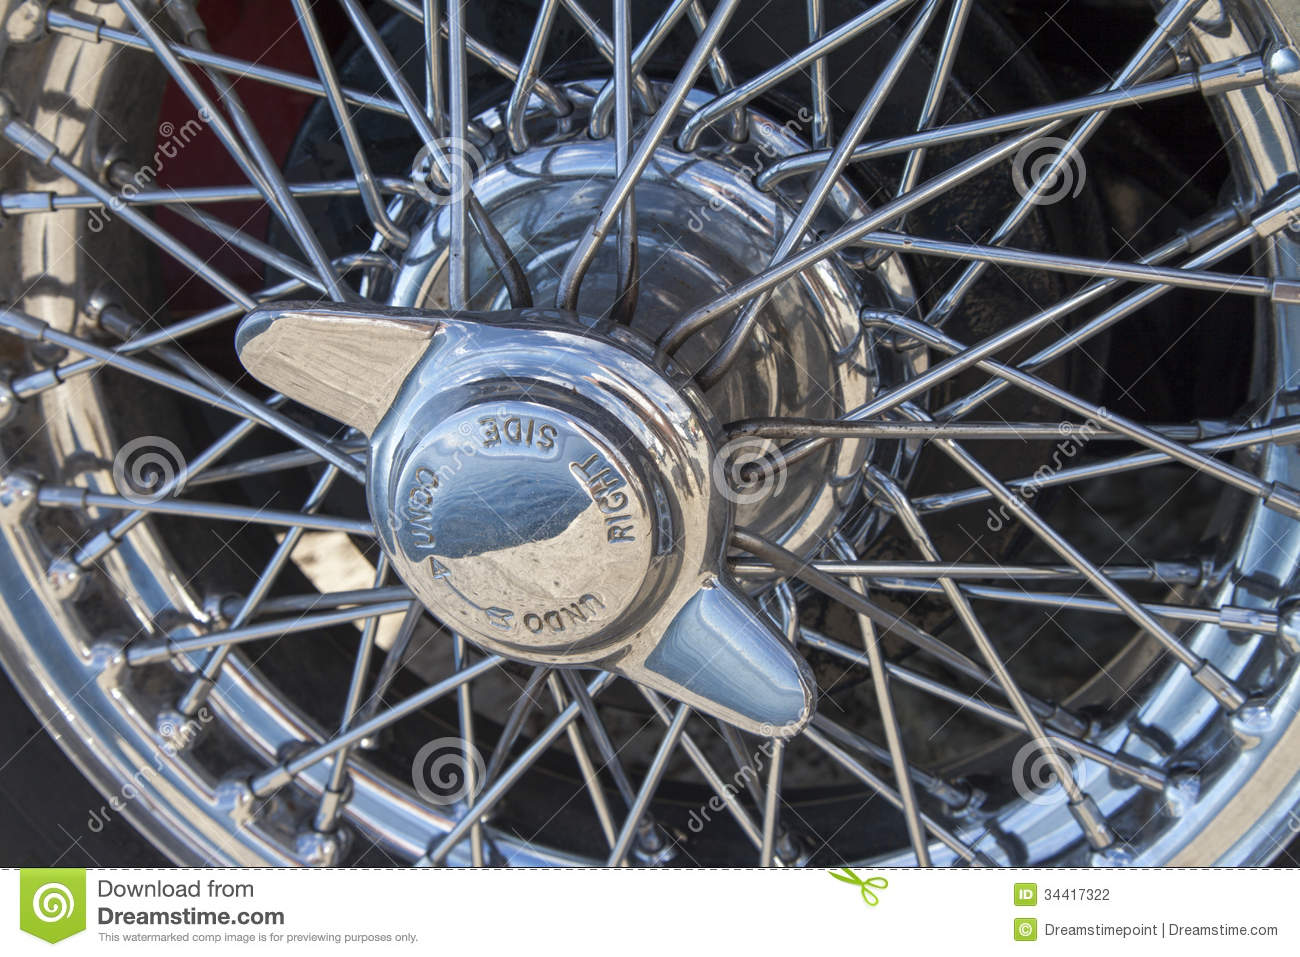 Vintage car wire wheels stock photo. Image of luxury - 34417322